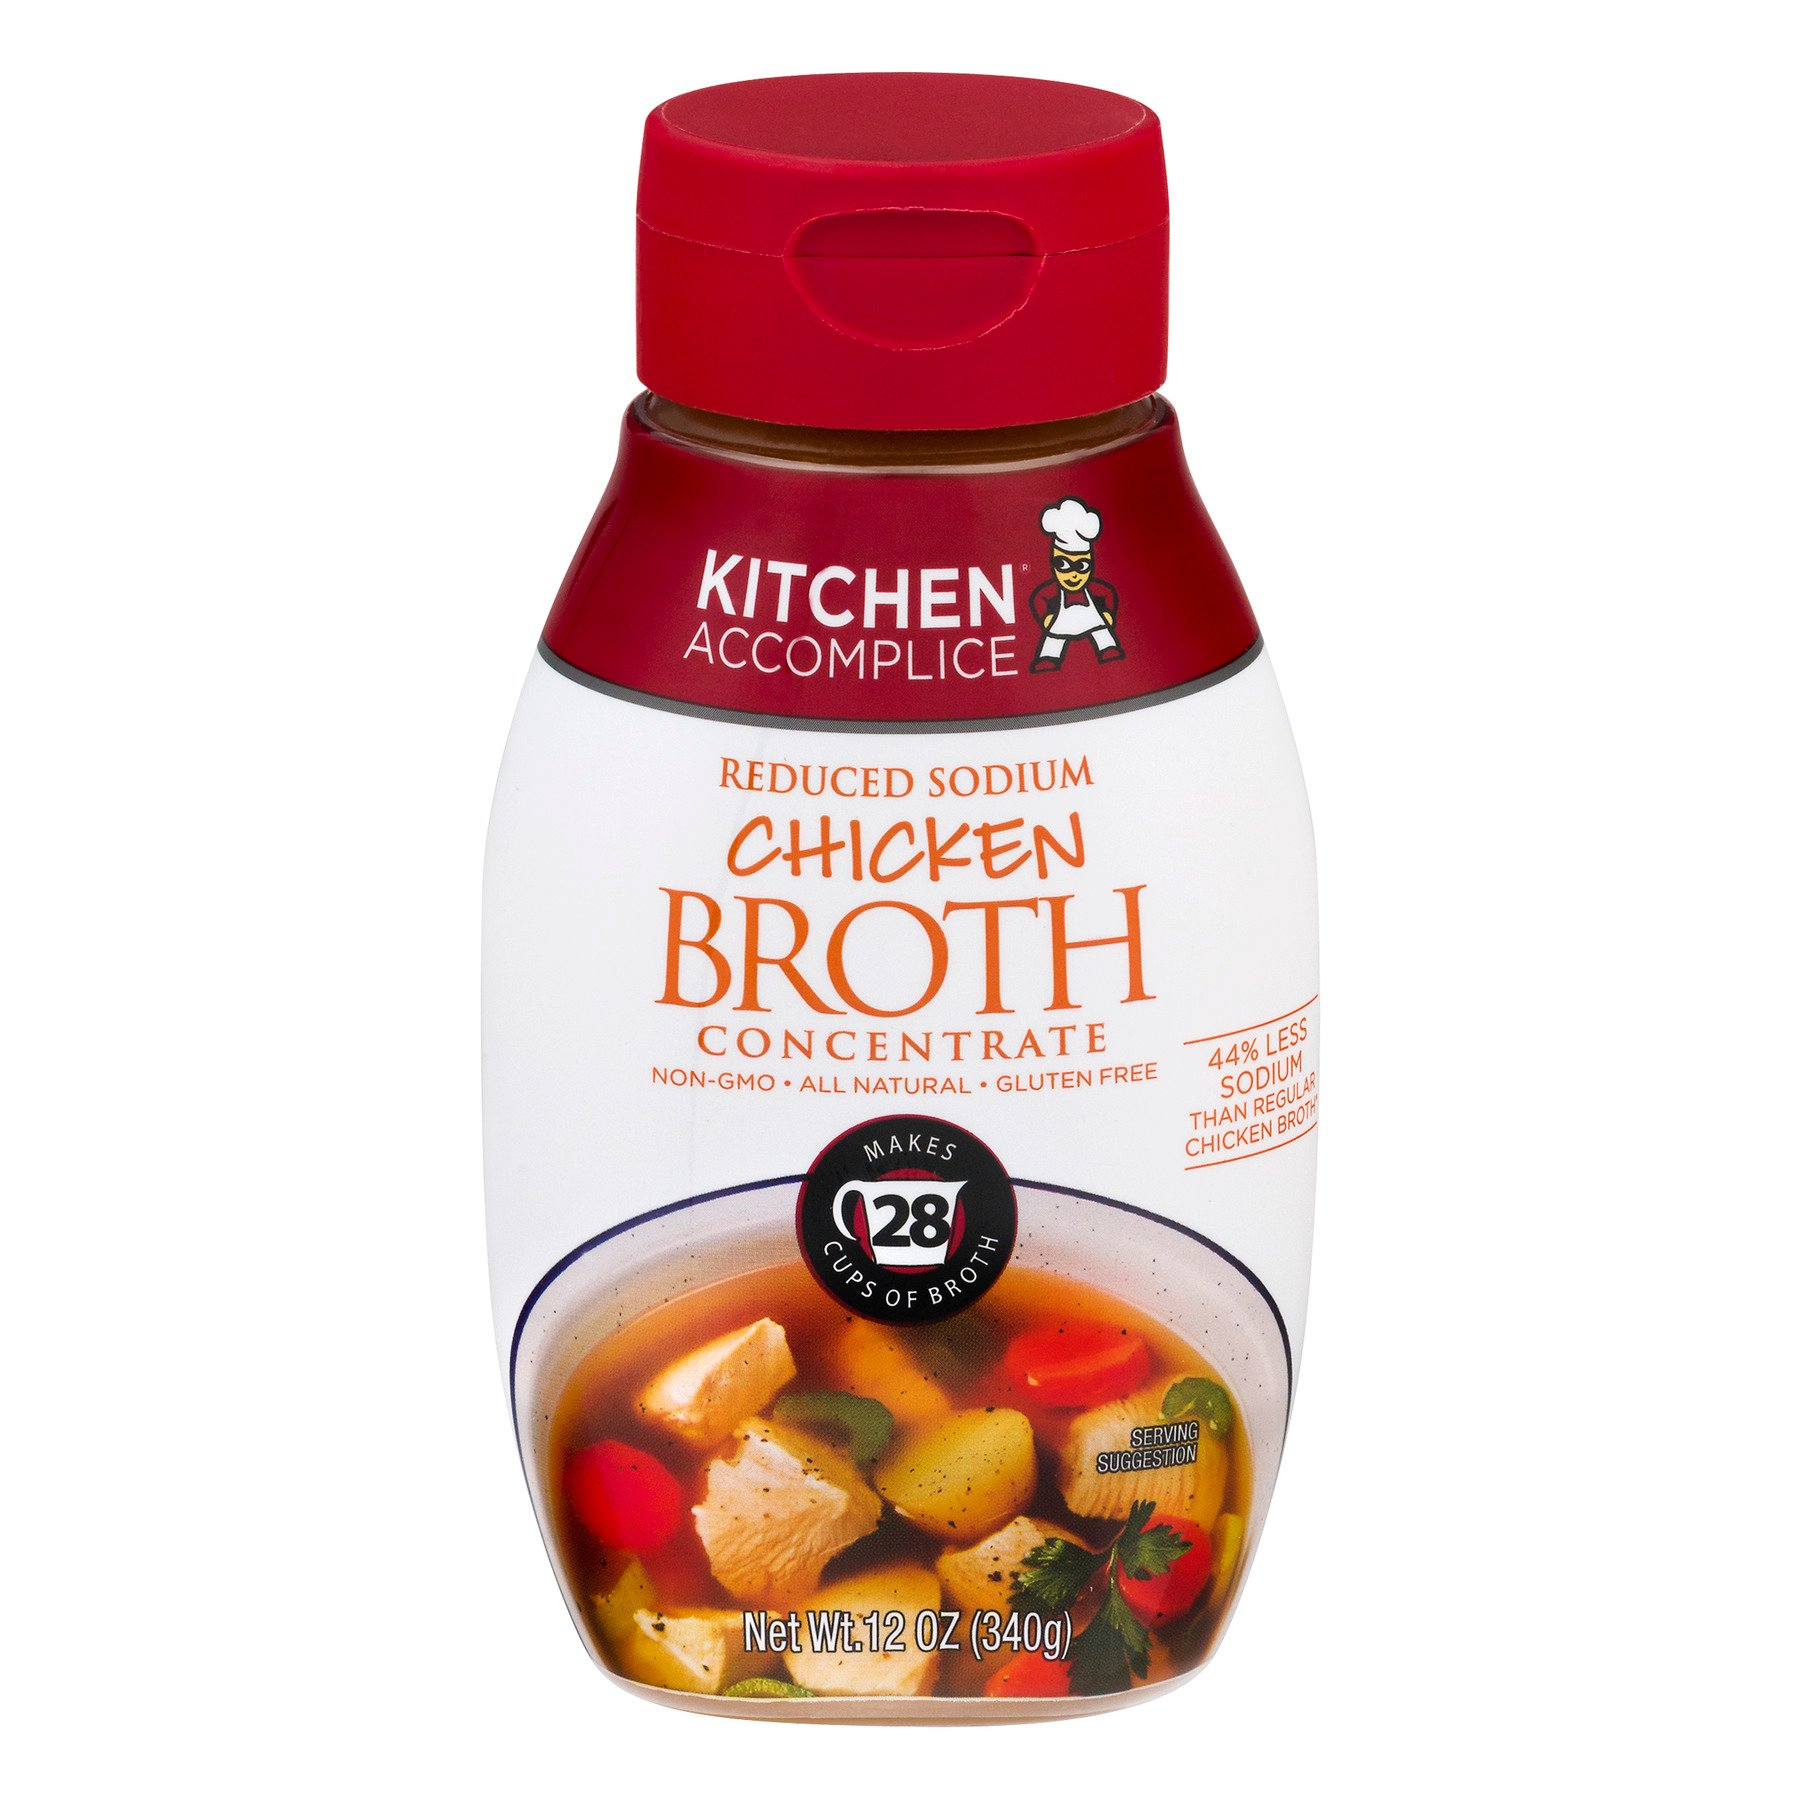 Kitchen Accomplice Chicken Broth Concentrate - Shop Canned Soup at HEB